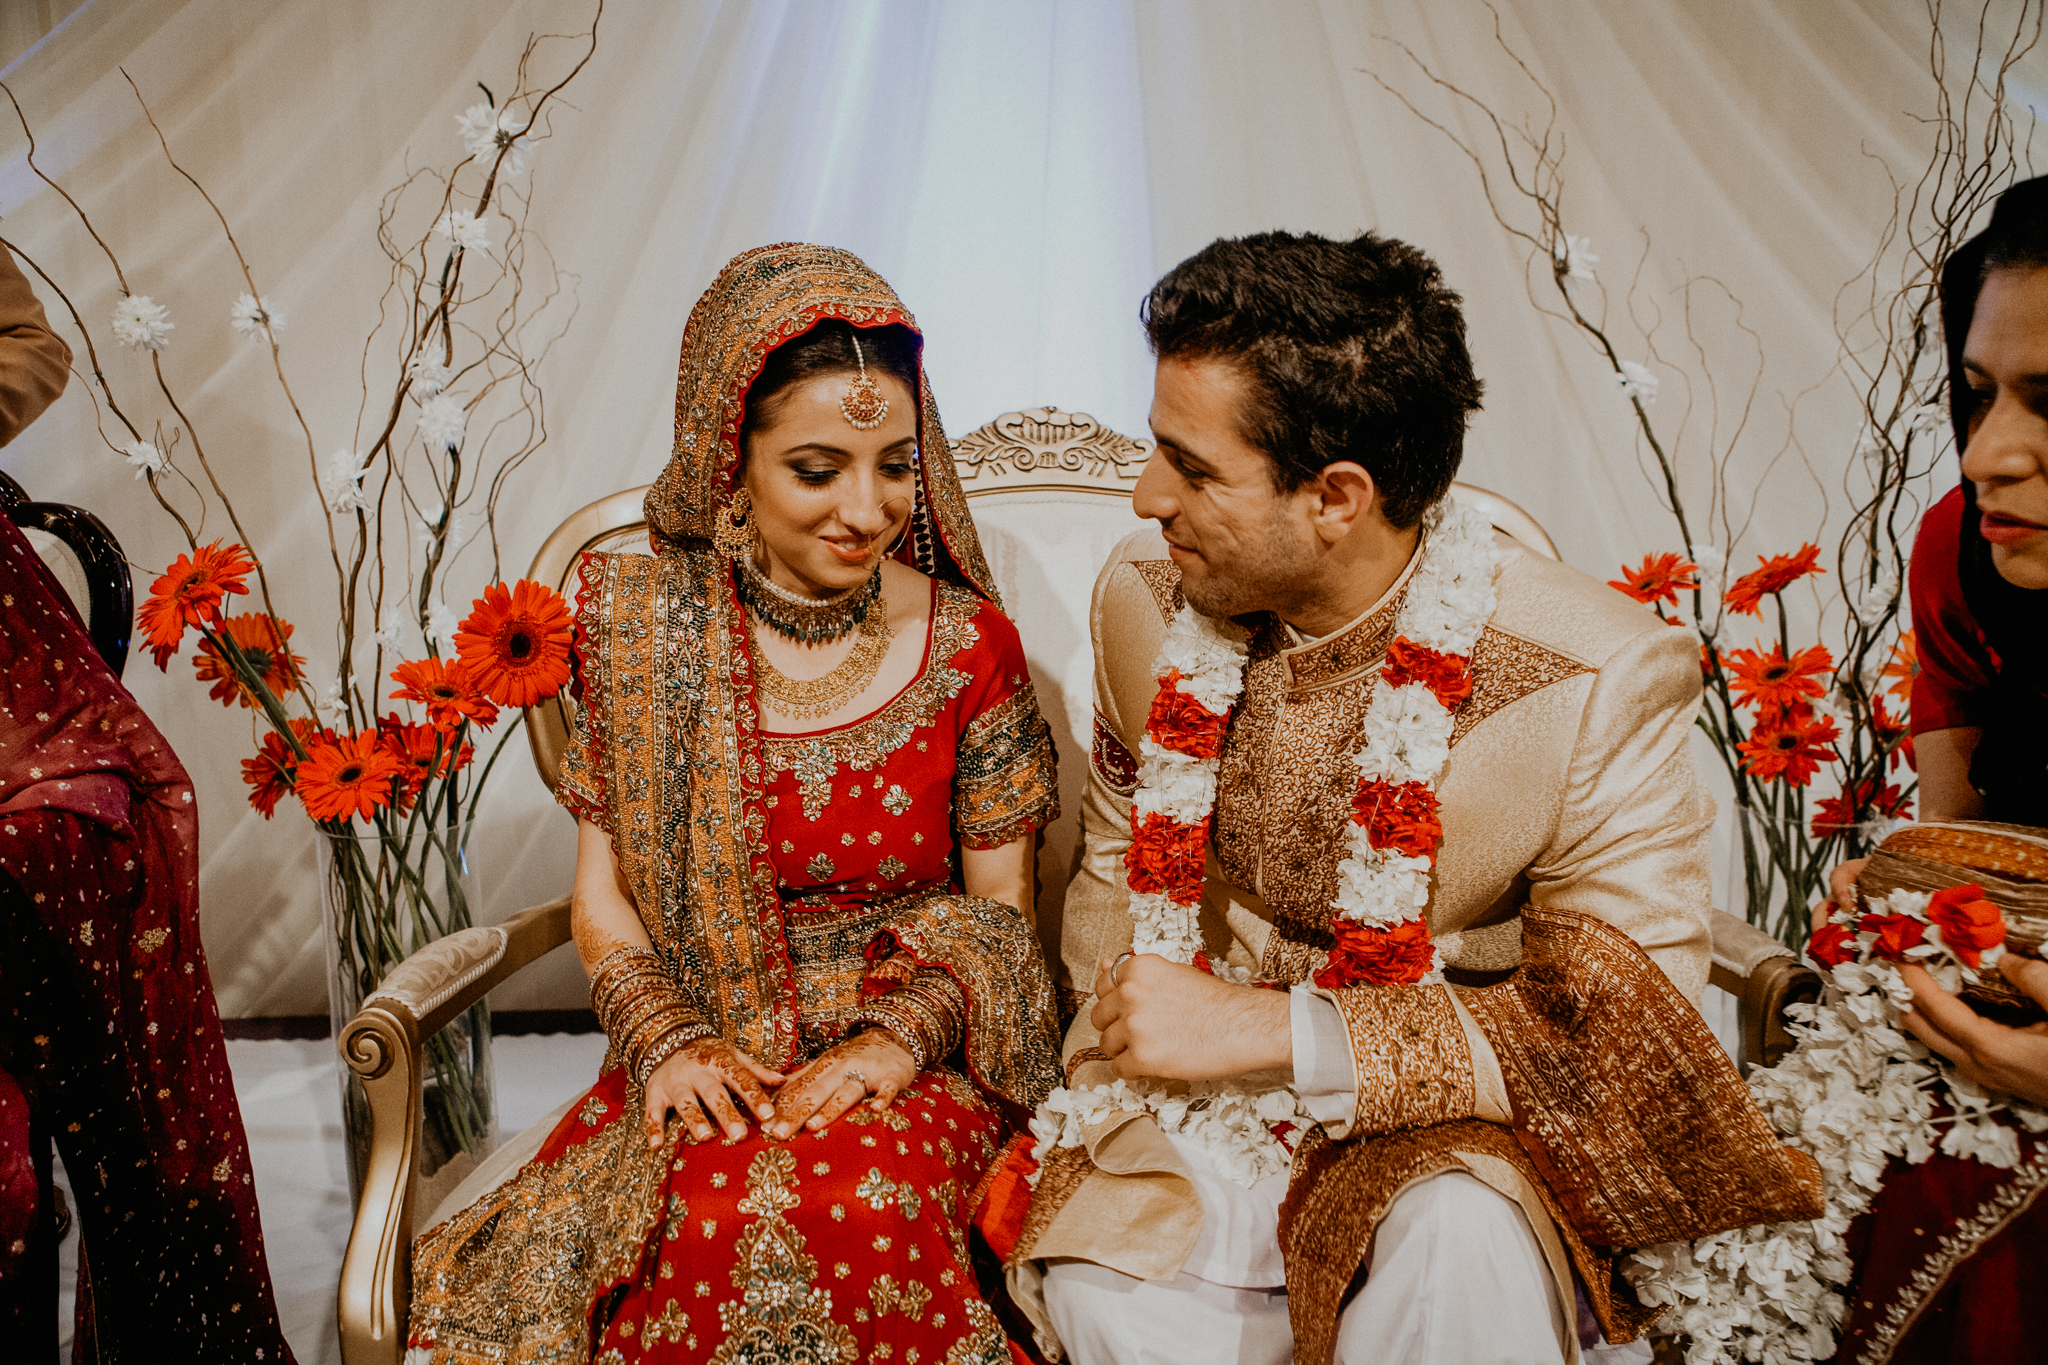 Bride and groom exchange rings at Mehndi ceremony Indian wedding photograph Minneapolis MN